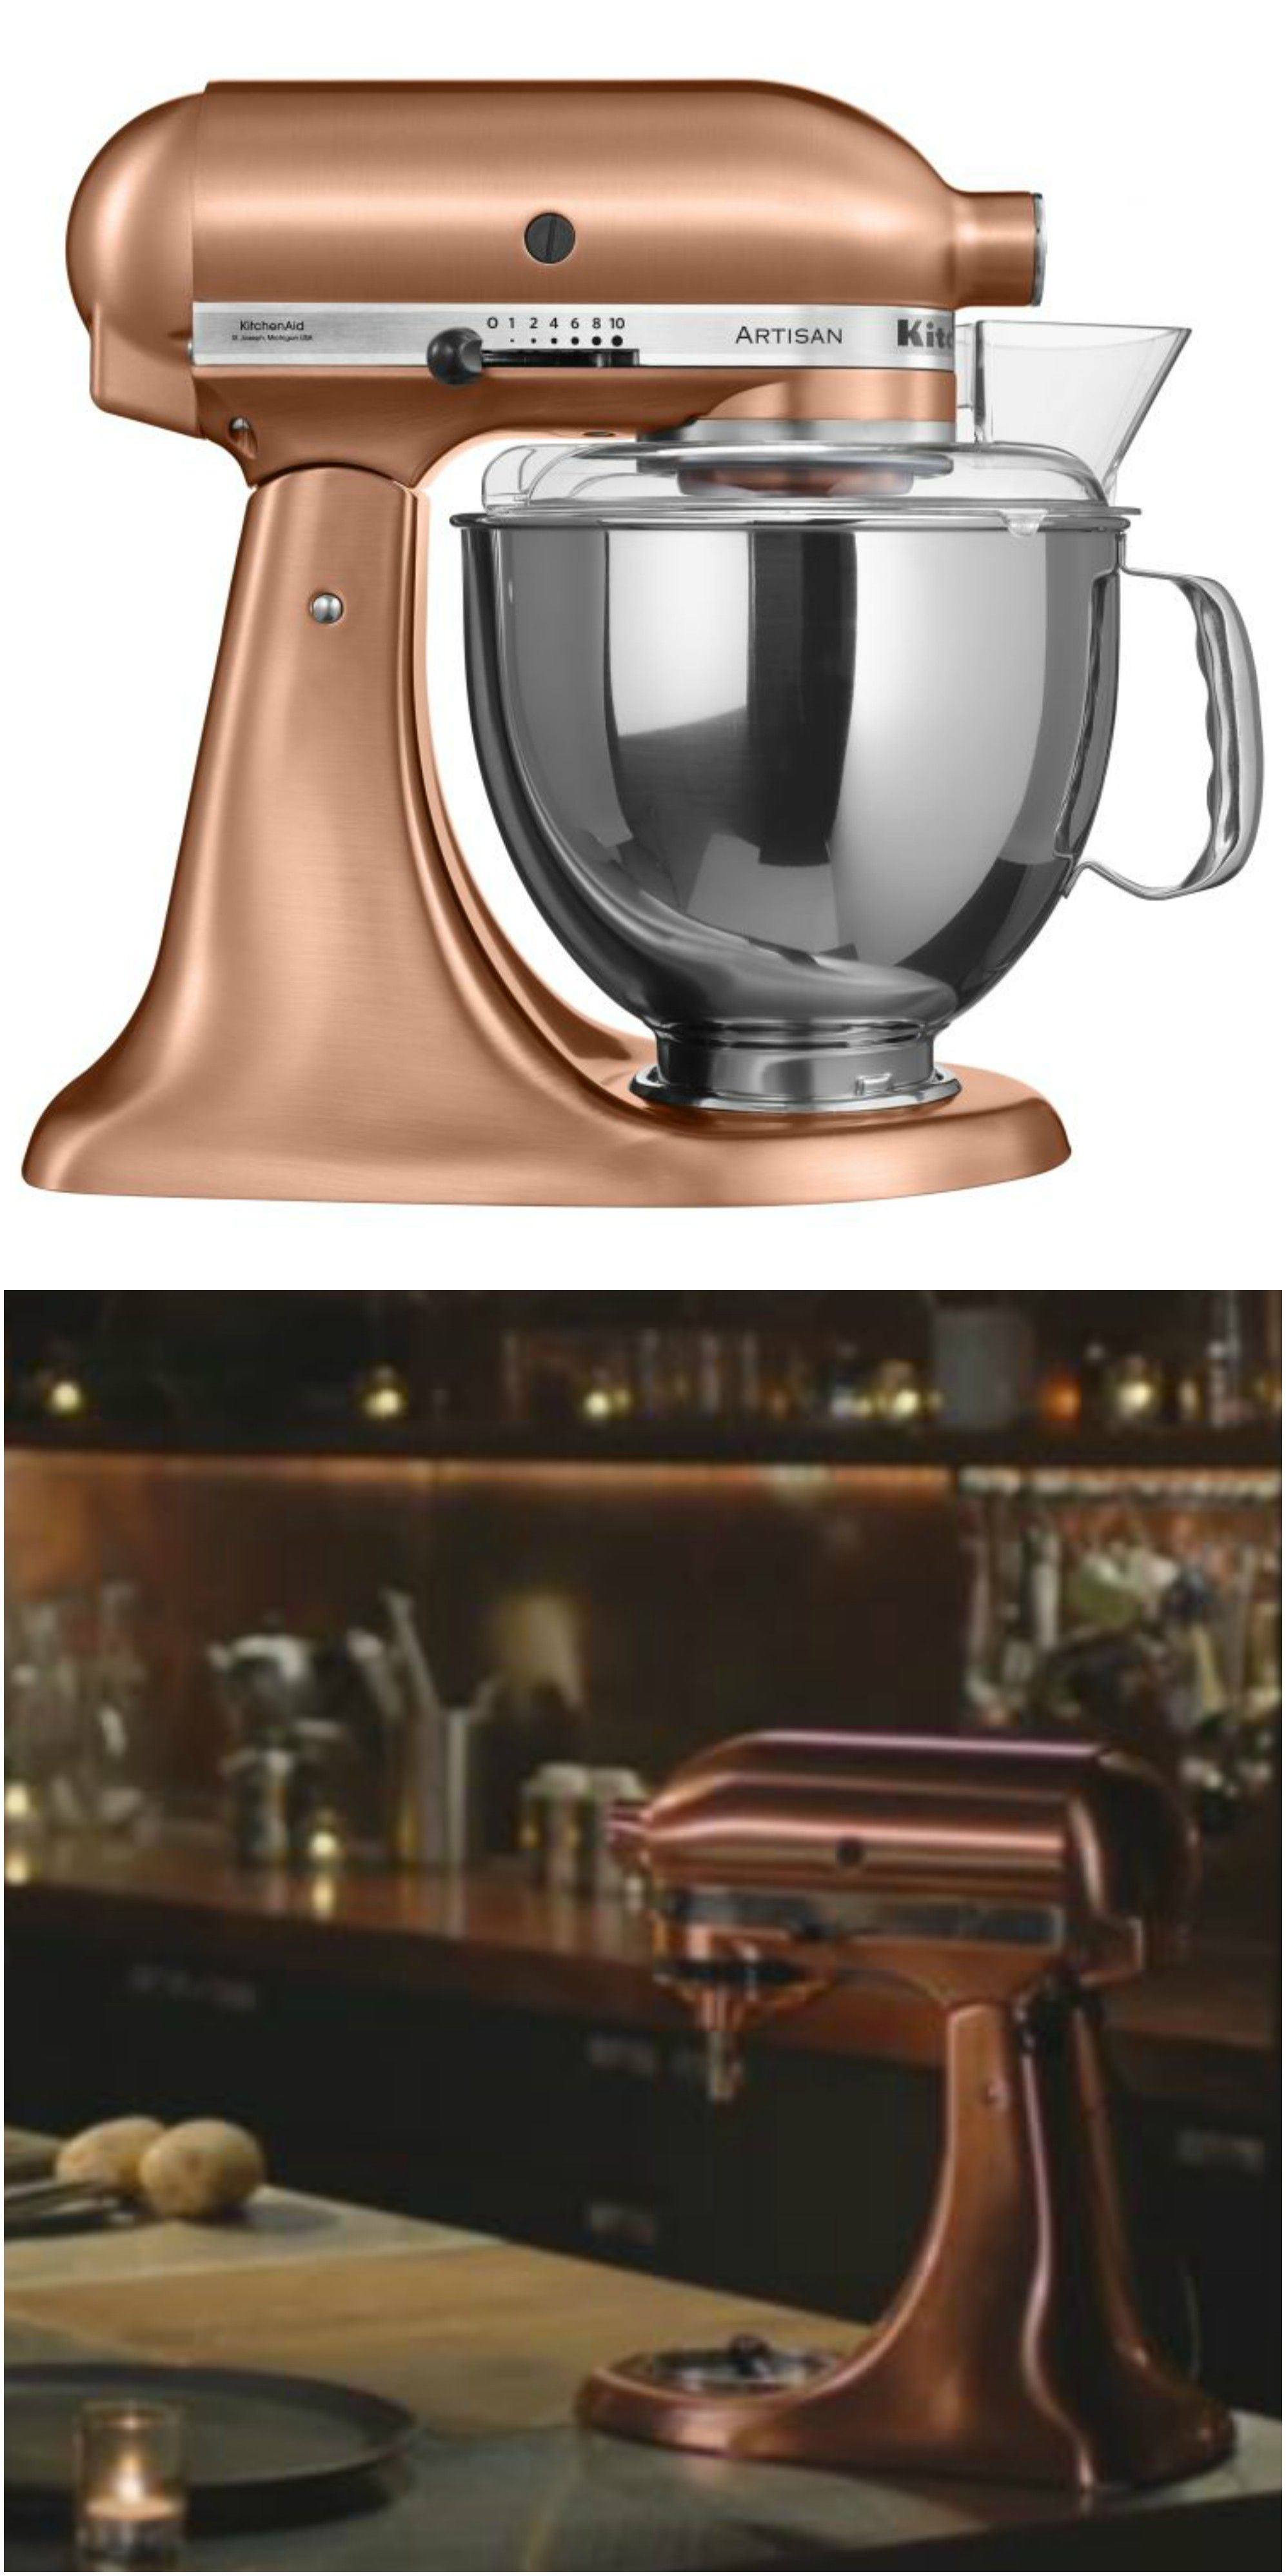 Nigella Lawson's copper stand mixer isn't the only KitchenAid ... on copper disney, copper canisters at walmart, copper keurig, copper flatware,